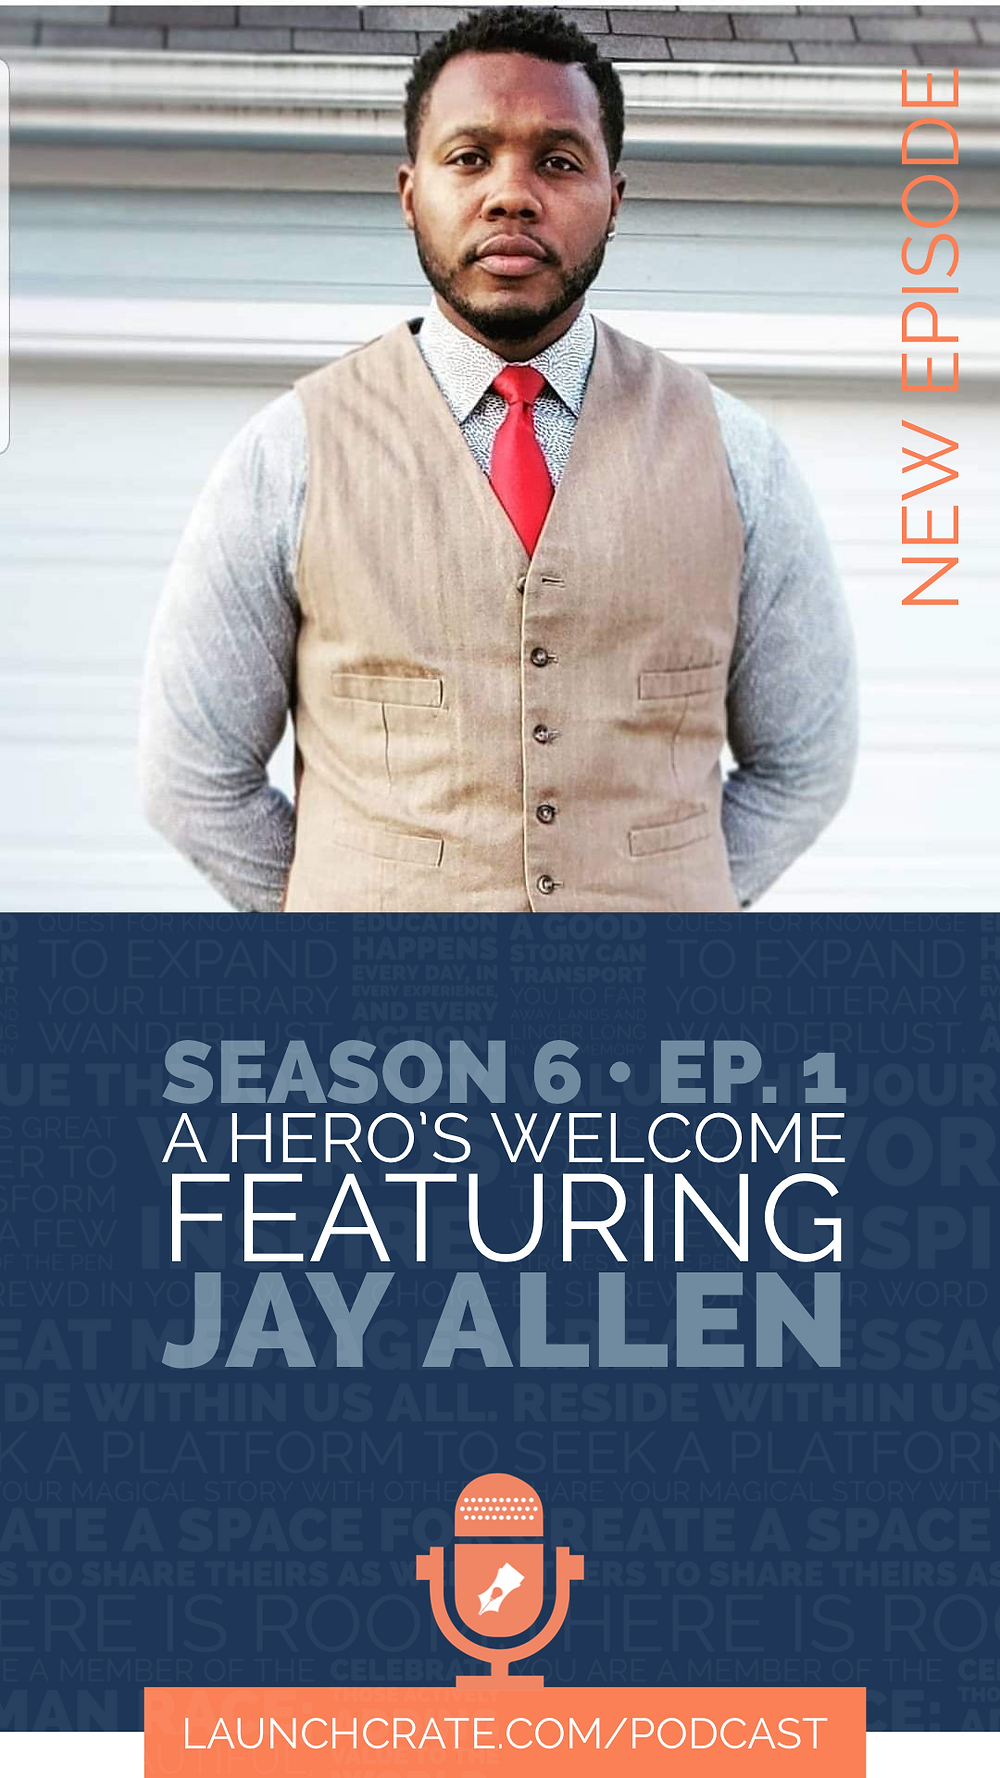 Podcast Season 6, Episode 1, with Jay Allen